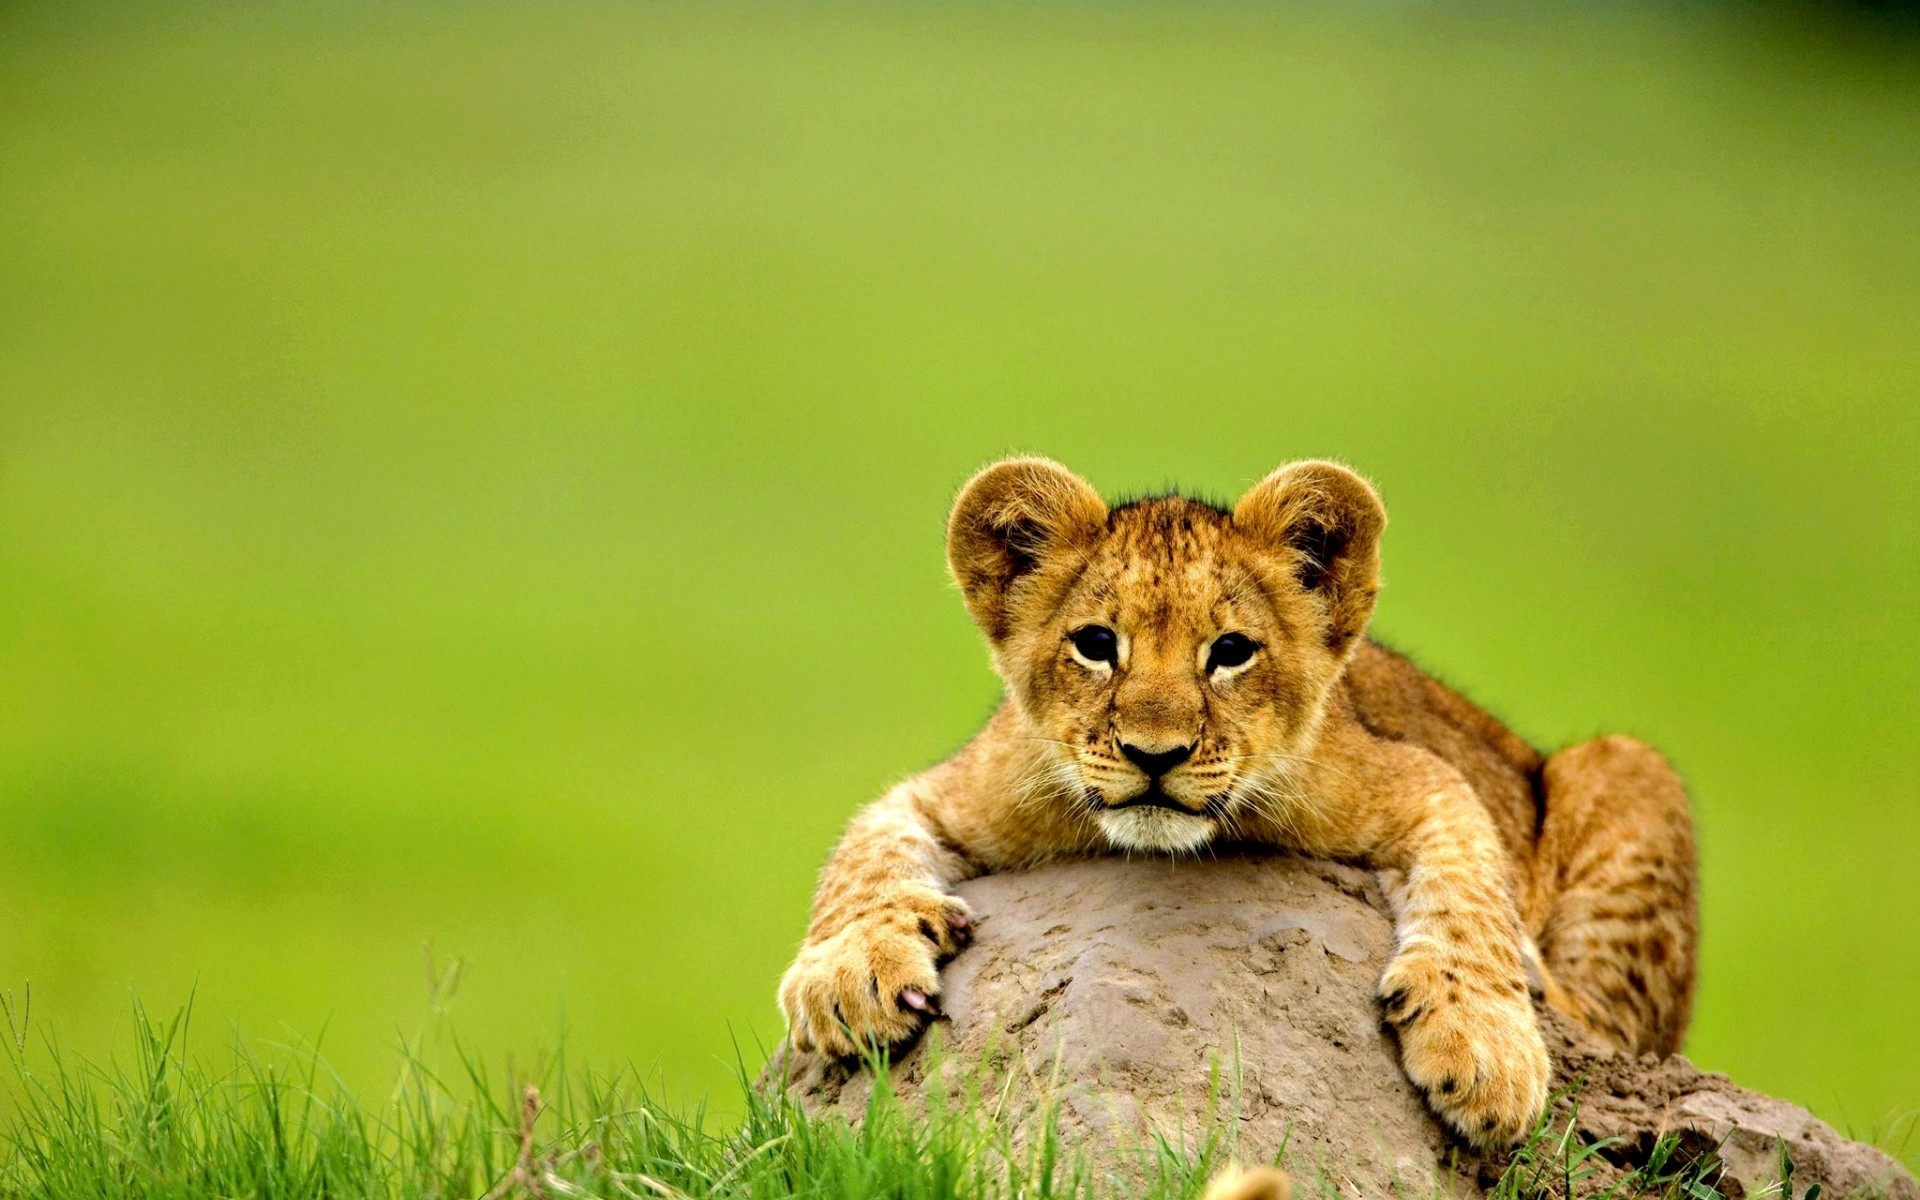 Lion Pictures Wallpaper 71 Images